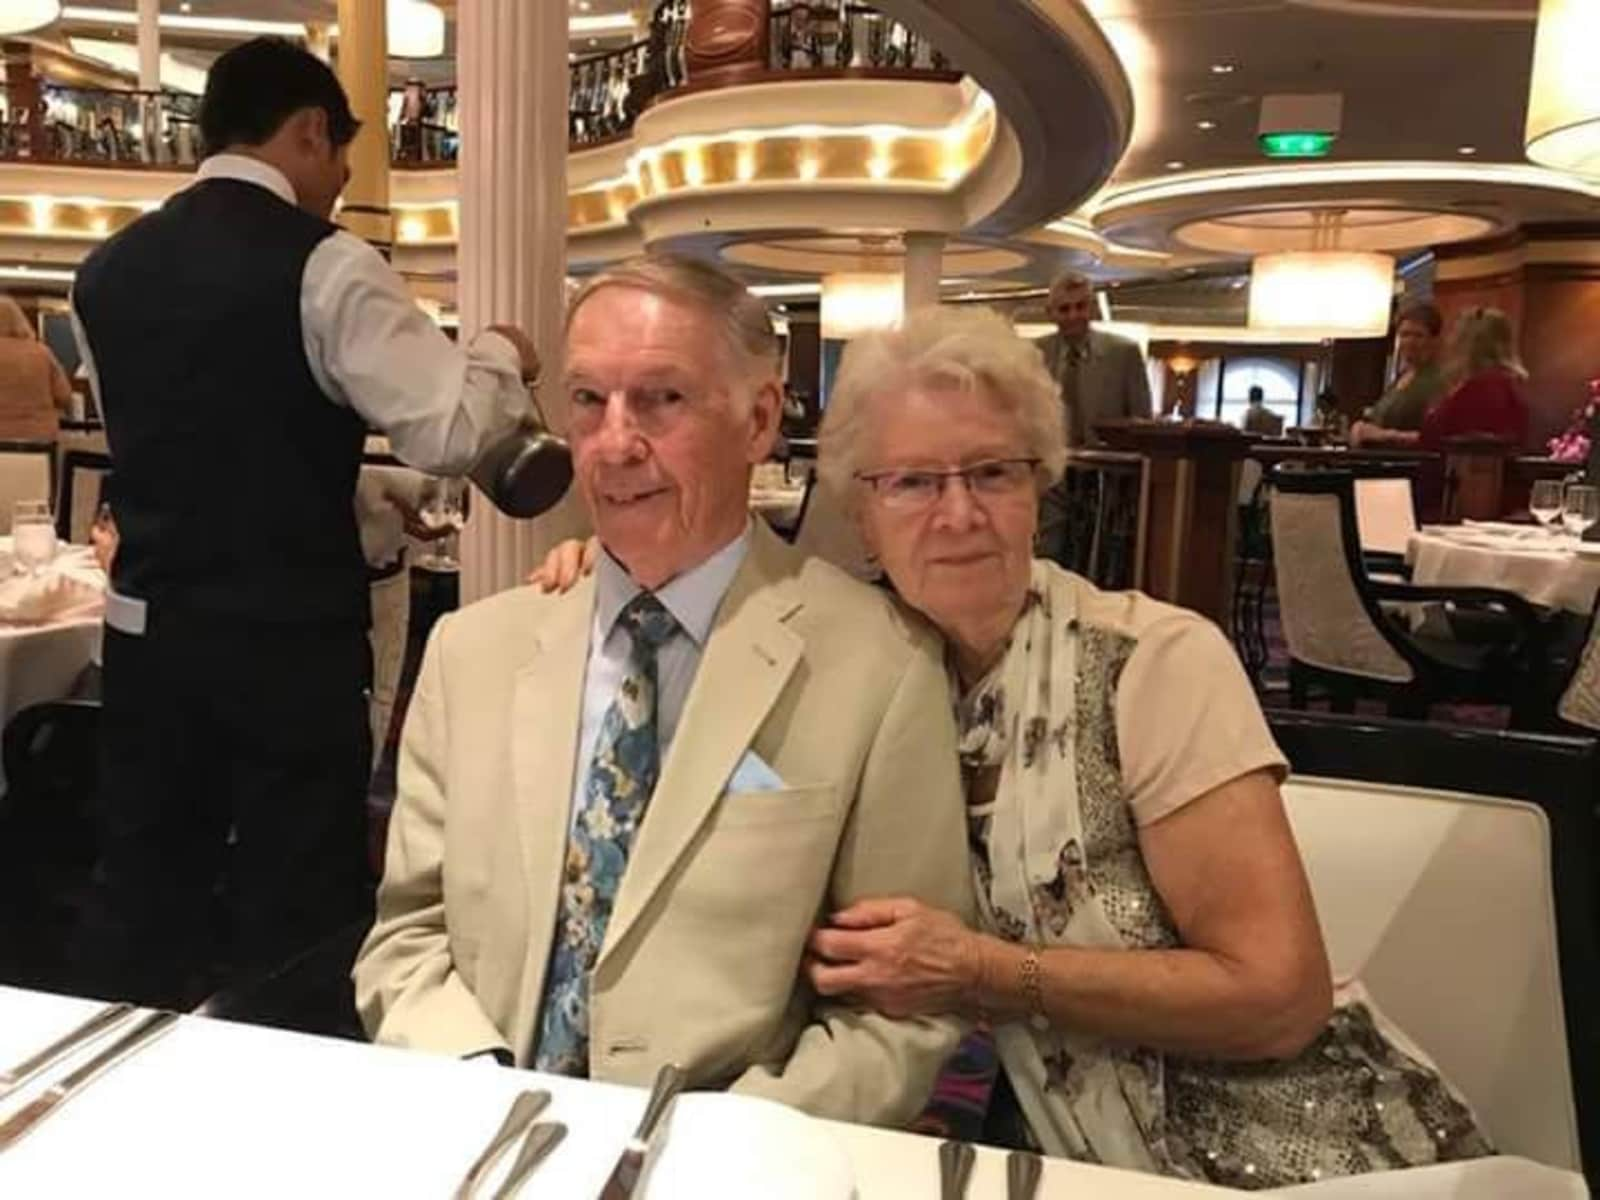 Douglas & Kathy from Christchurch, New Zealand